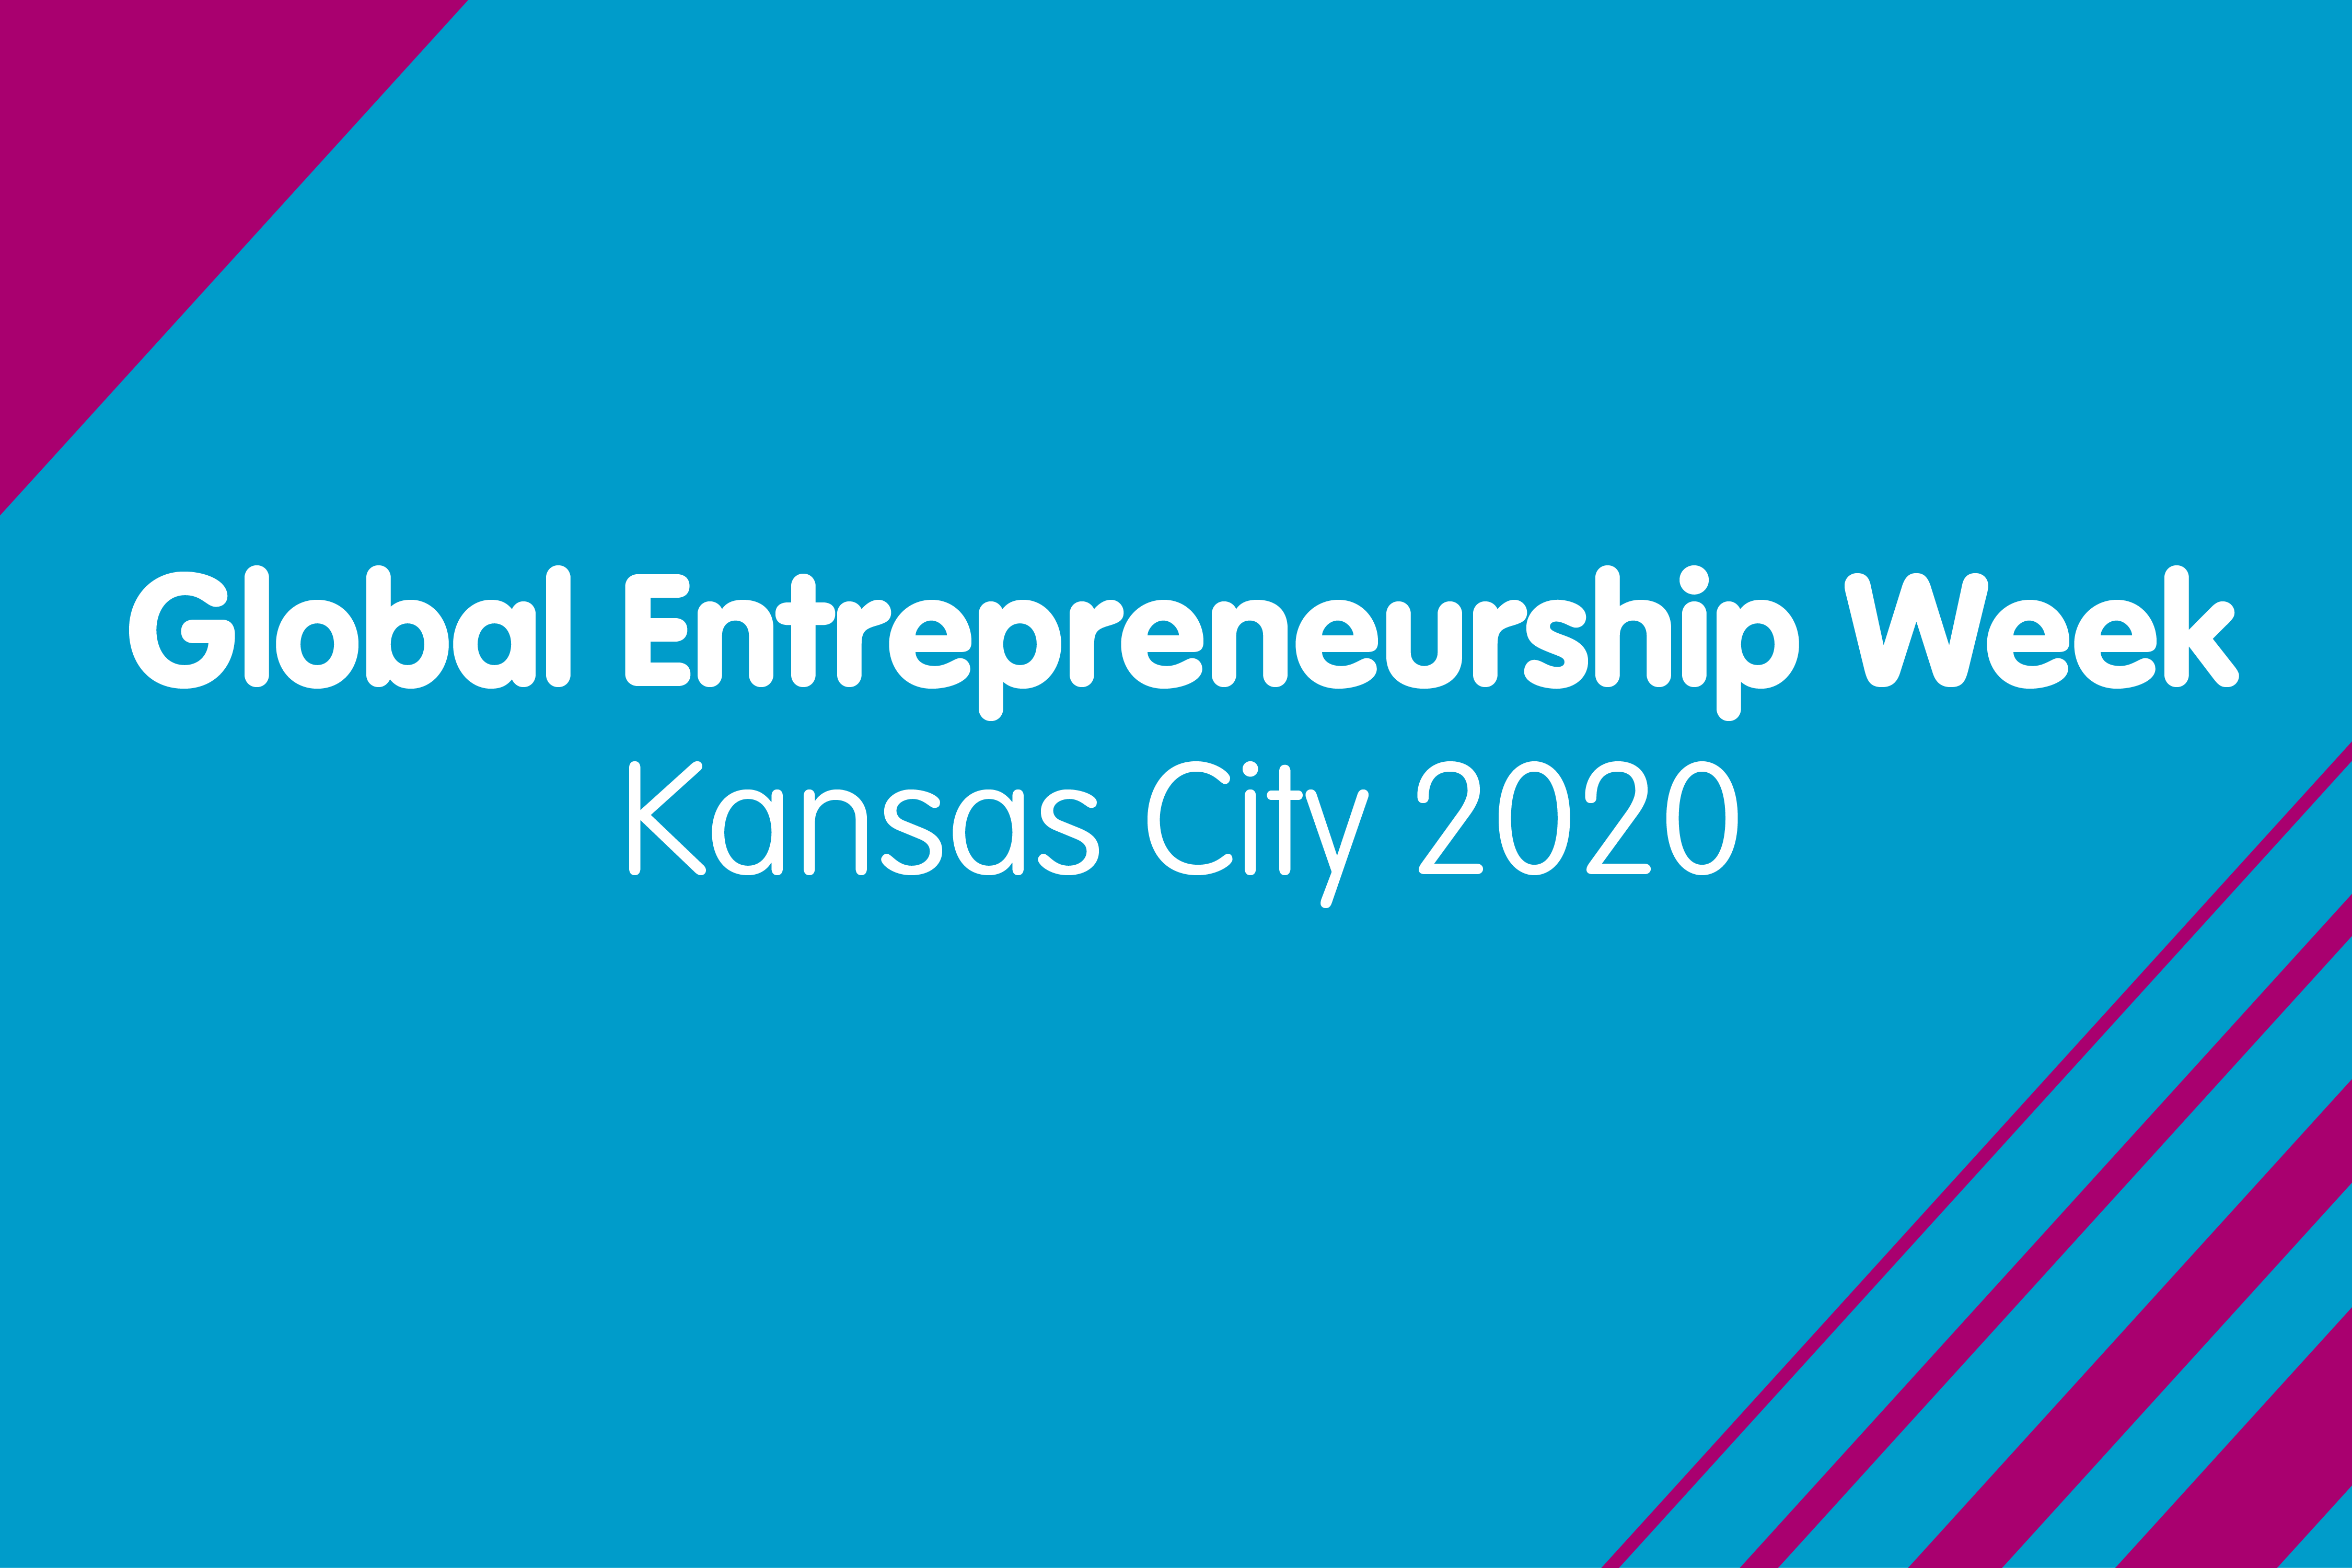 Global Entrepreneurship Week - Kansas City